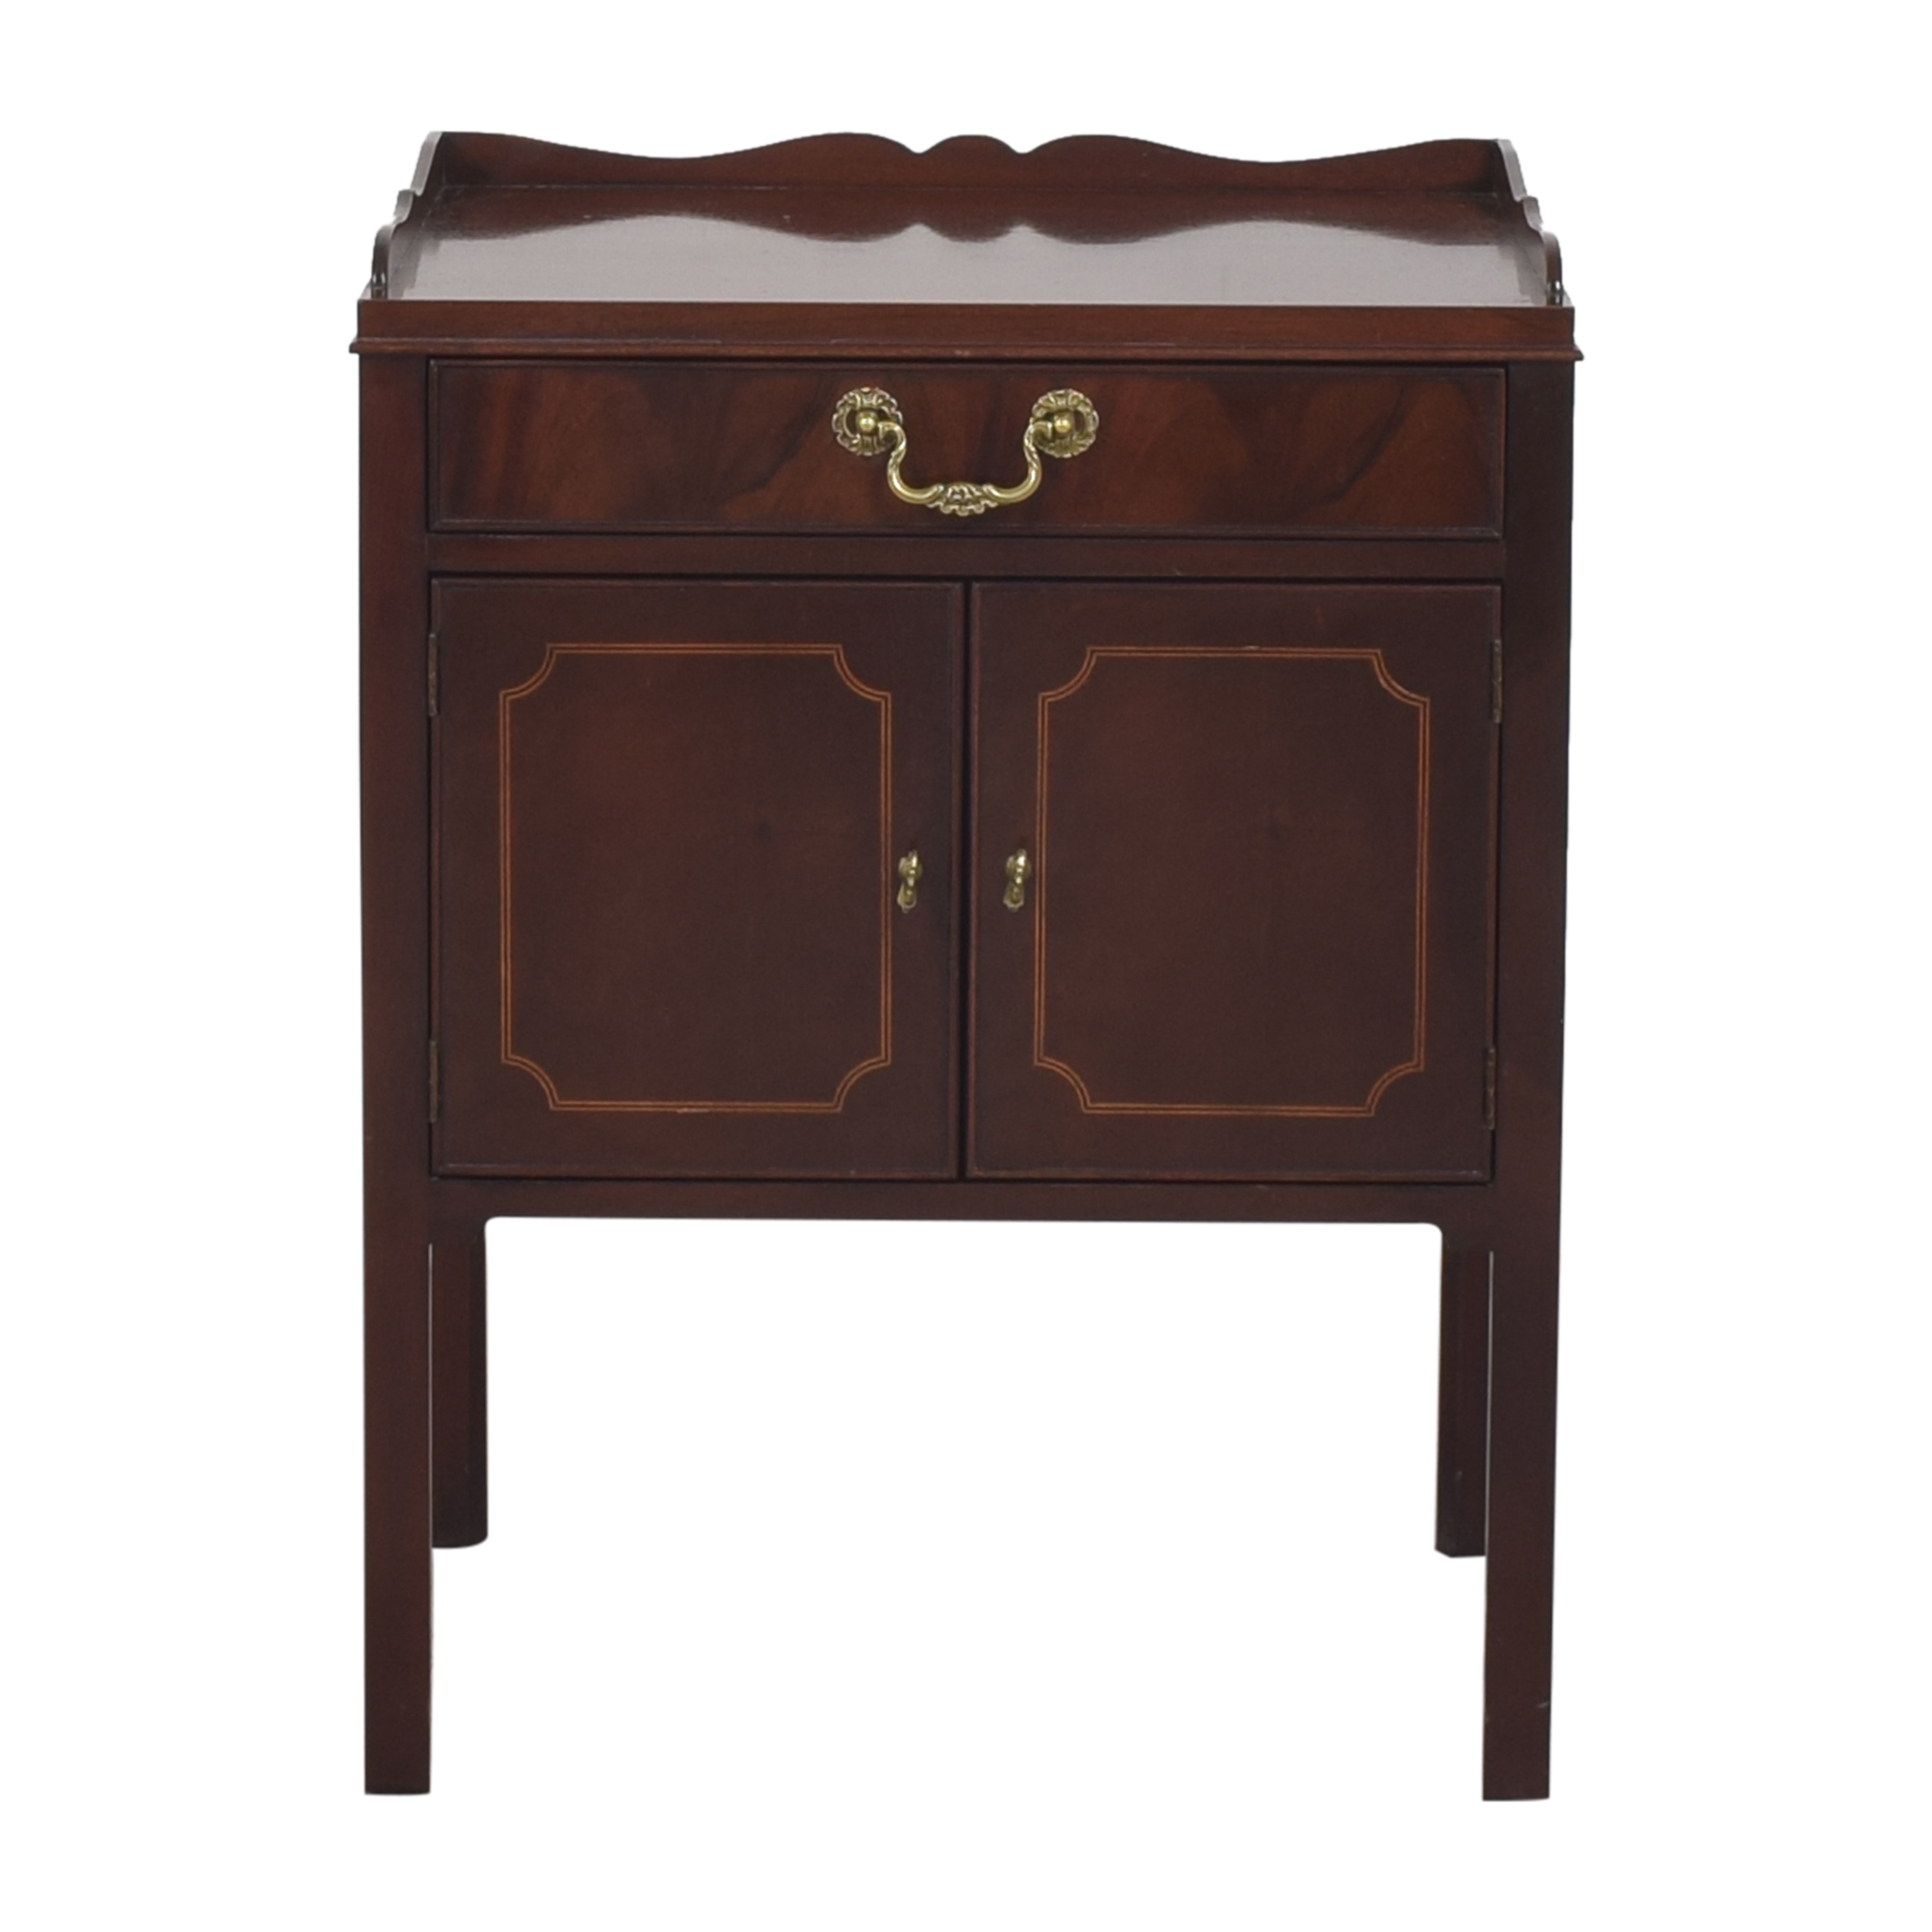 buy Baker Furniture Baker Furniture Two Door Nightstand online